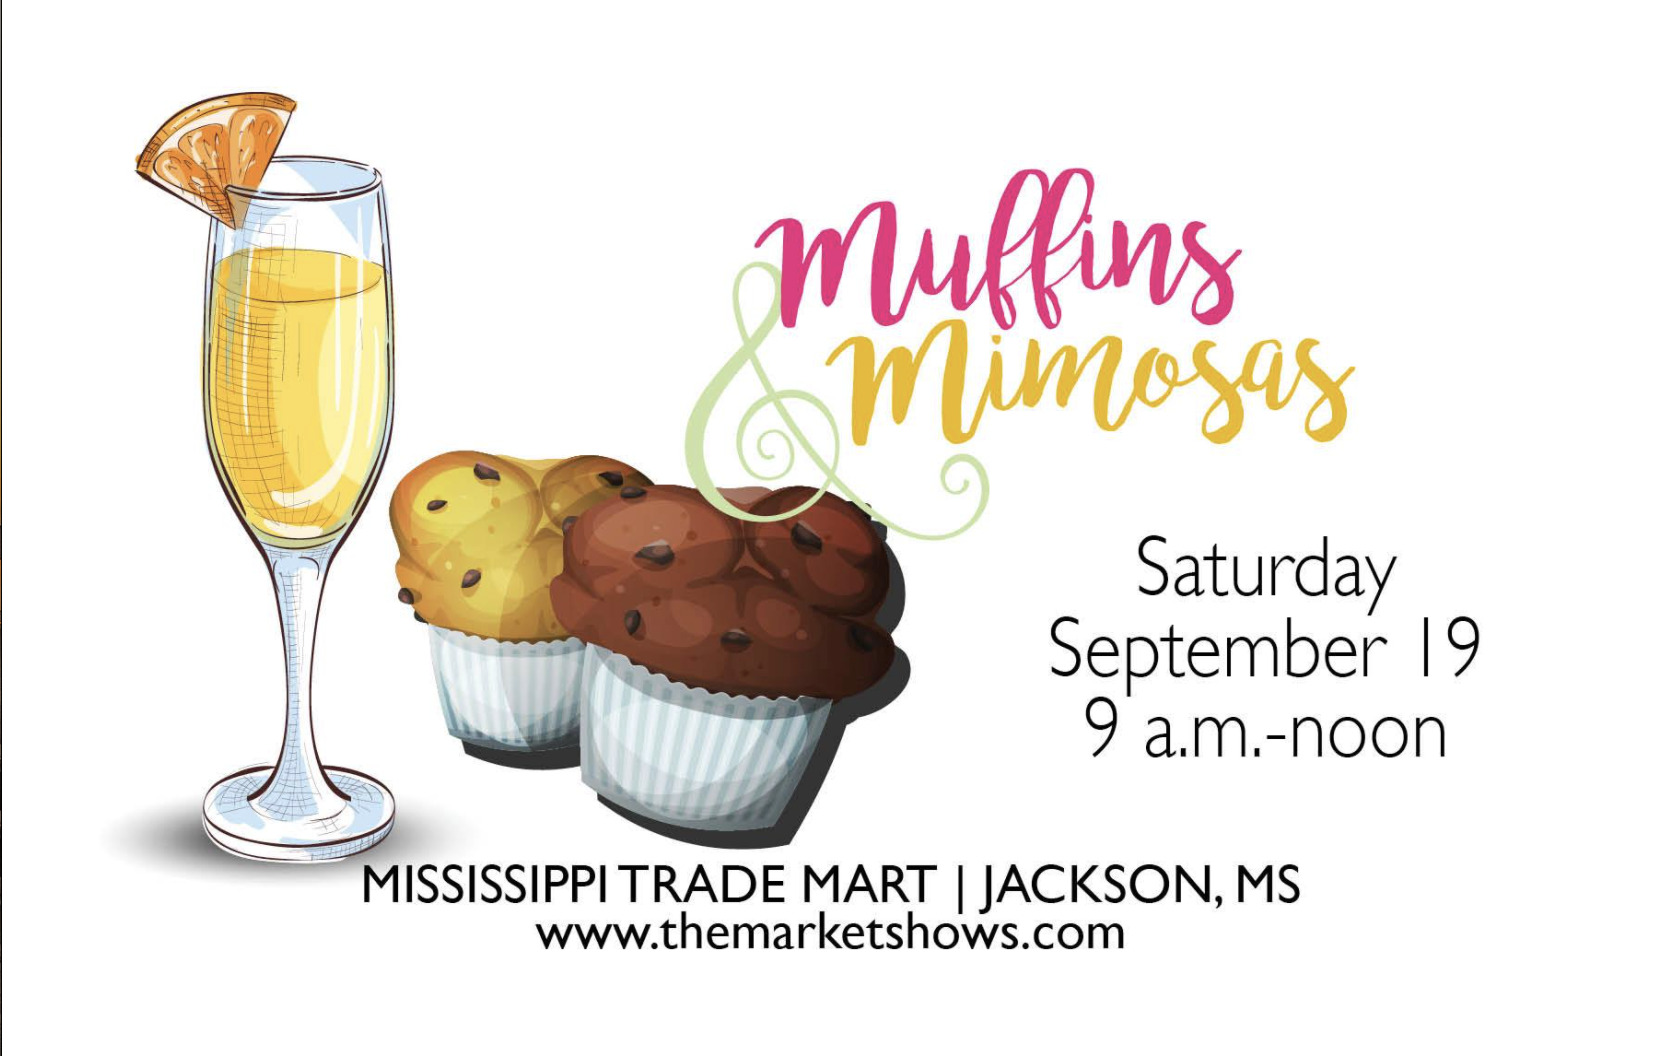 Muffins & Mimosas of Jackson by The Market Shows